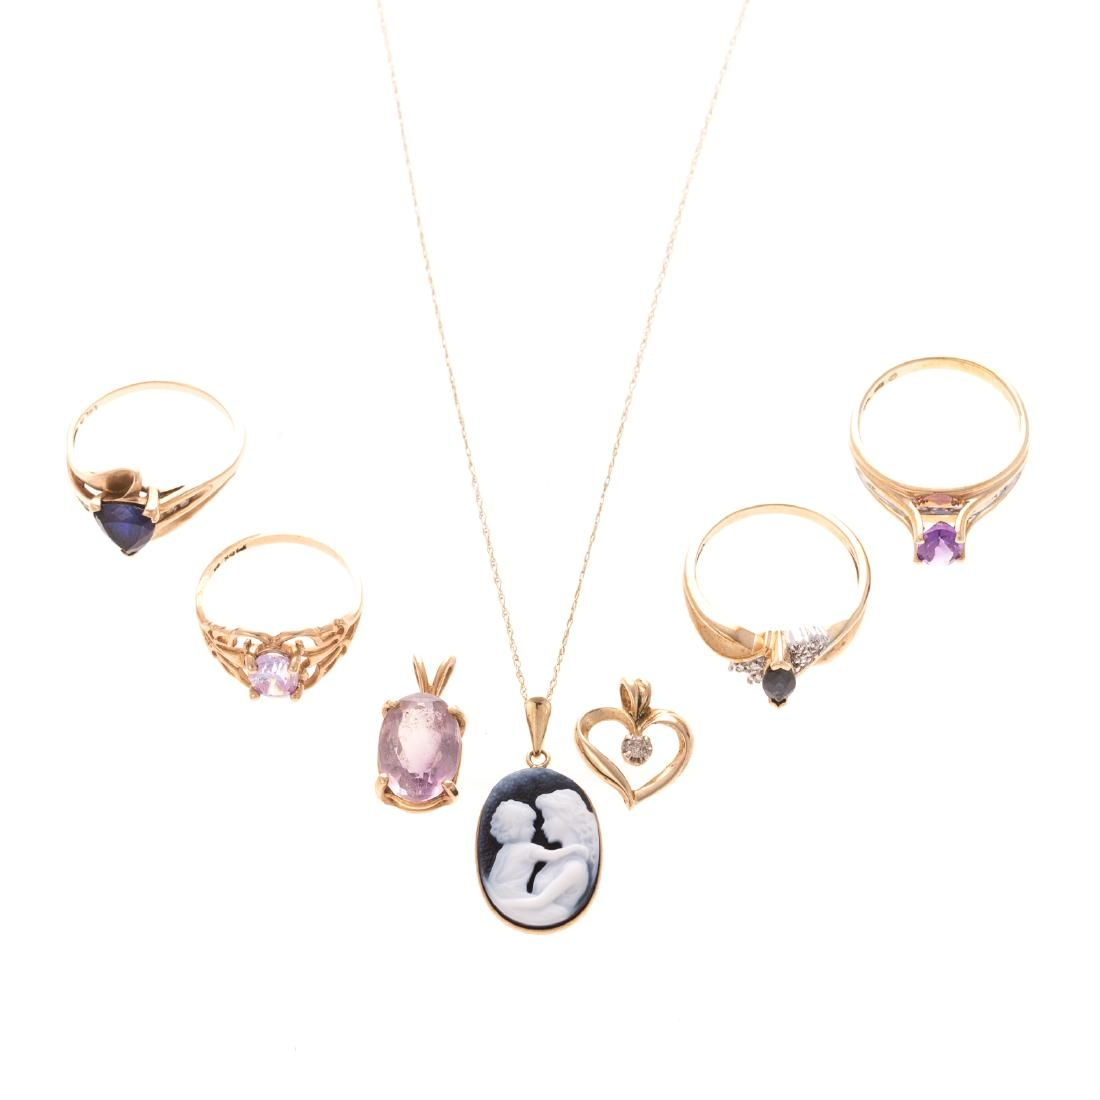 A Collection of Gold Pendants and Rings